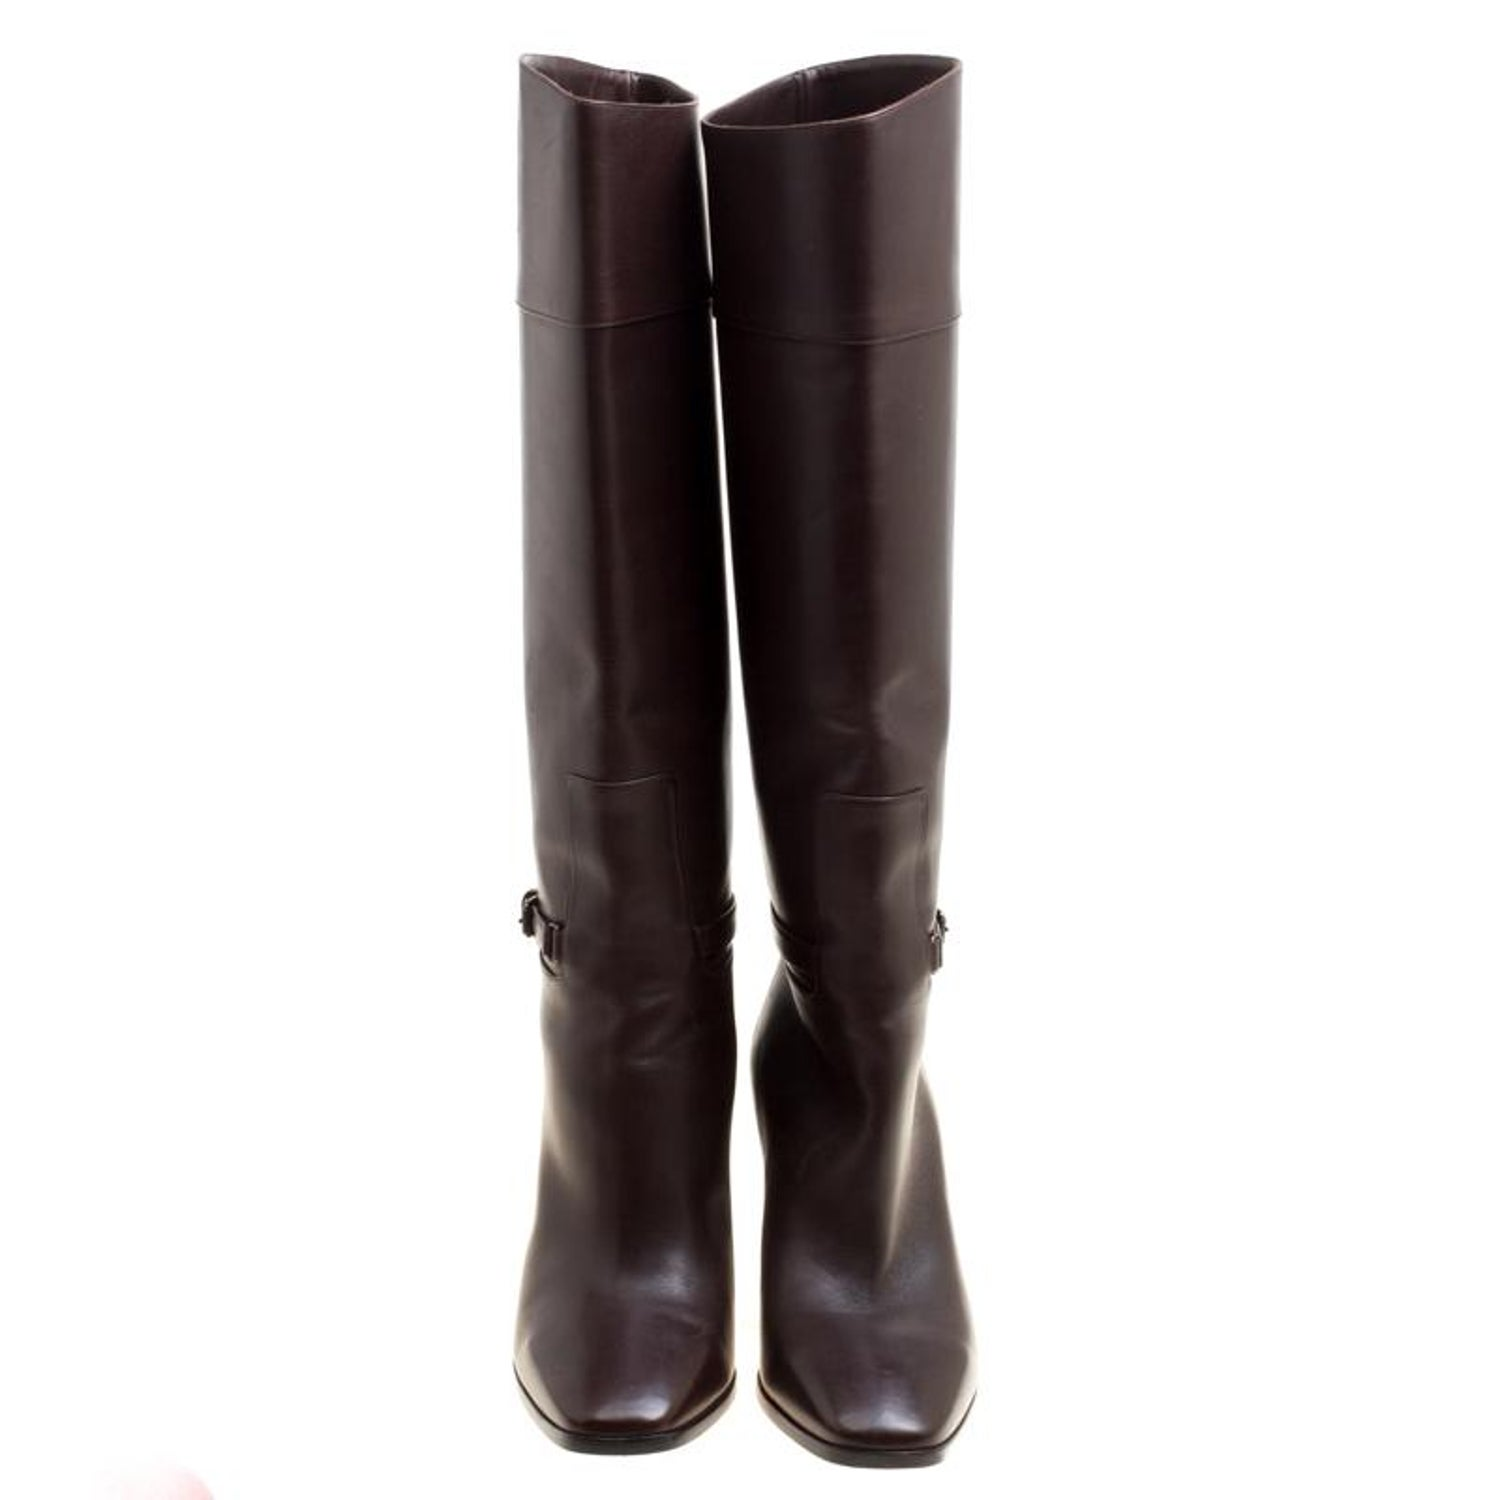 c2567c8ad7d3 Christian Louboutin Brown Leather Mervillon Knee Boots Size 38 For Sale at  1stdibs